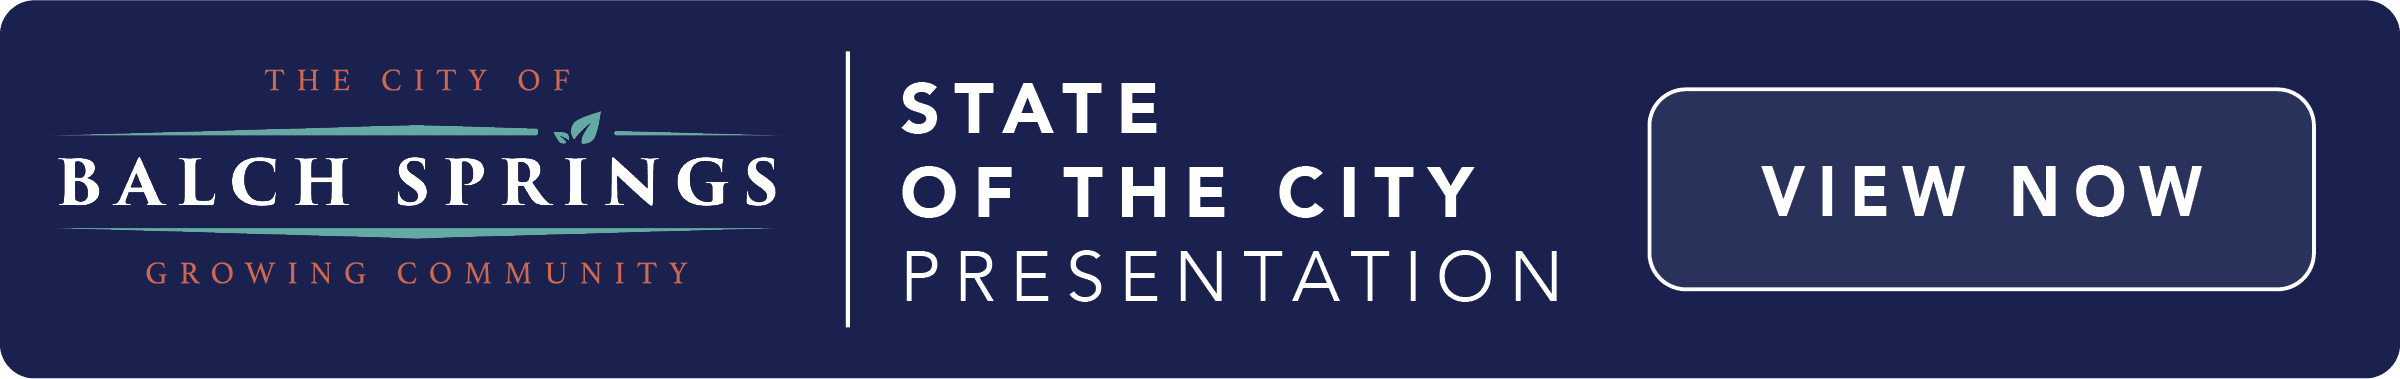 StateoftheCity_Button-03